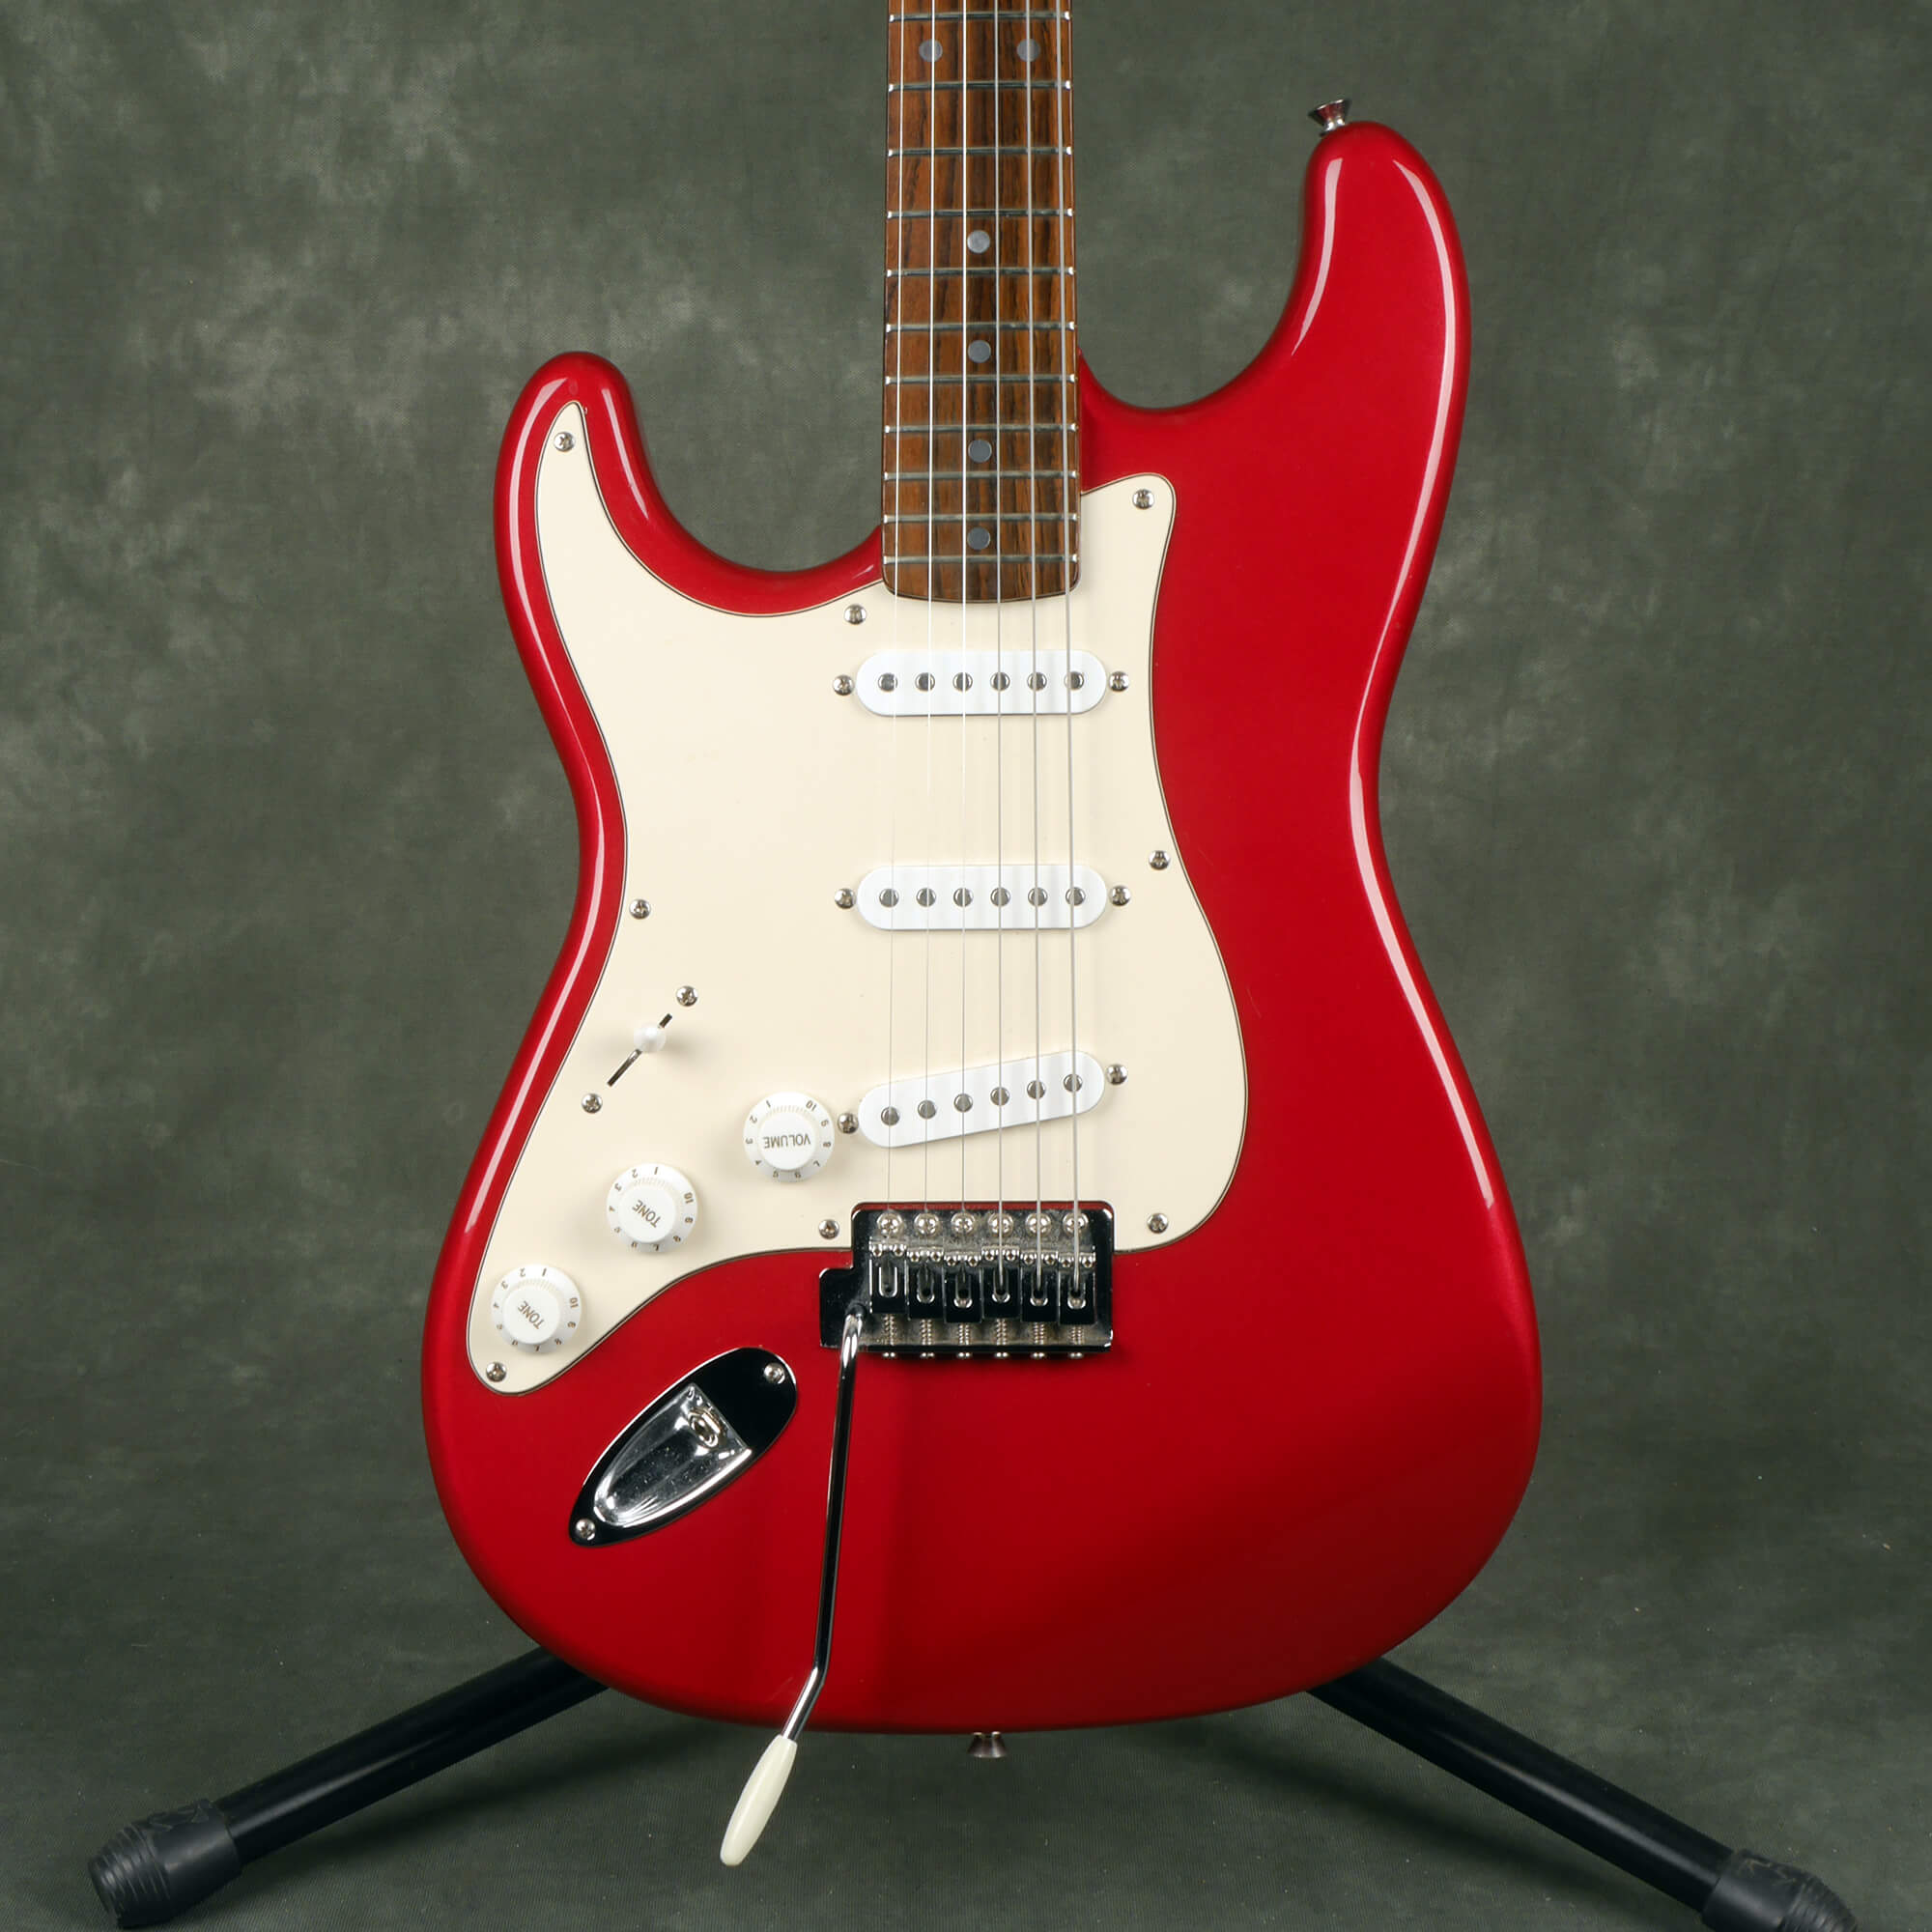 Squier Standard Series Stratocaster - Left Hand - Red - 2nd Hand